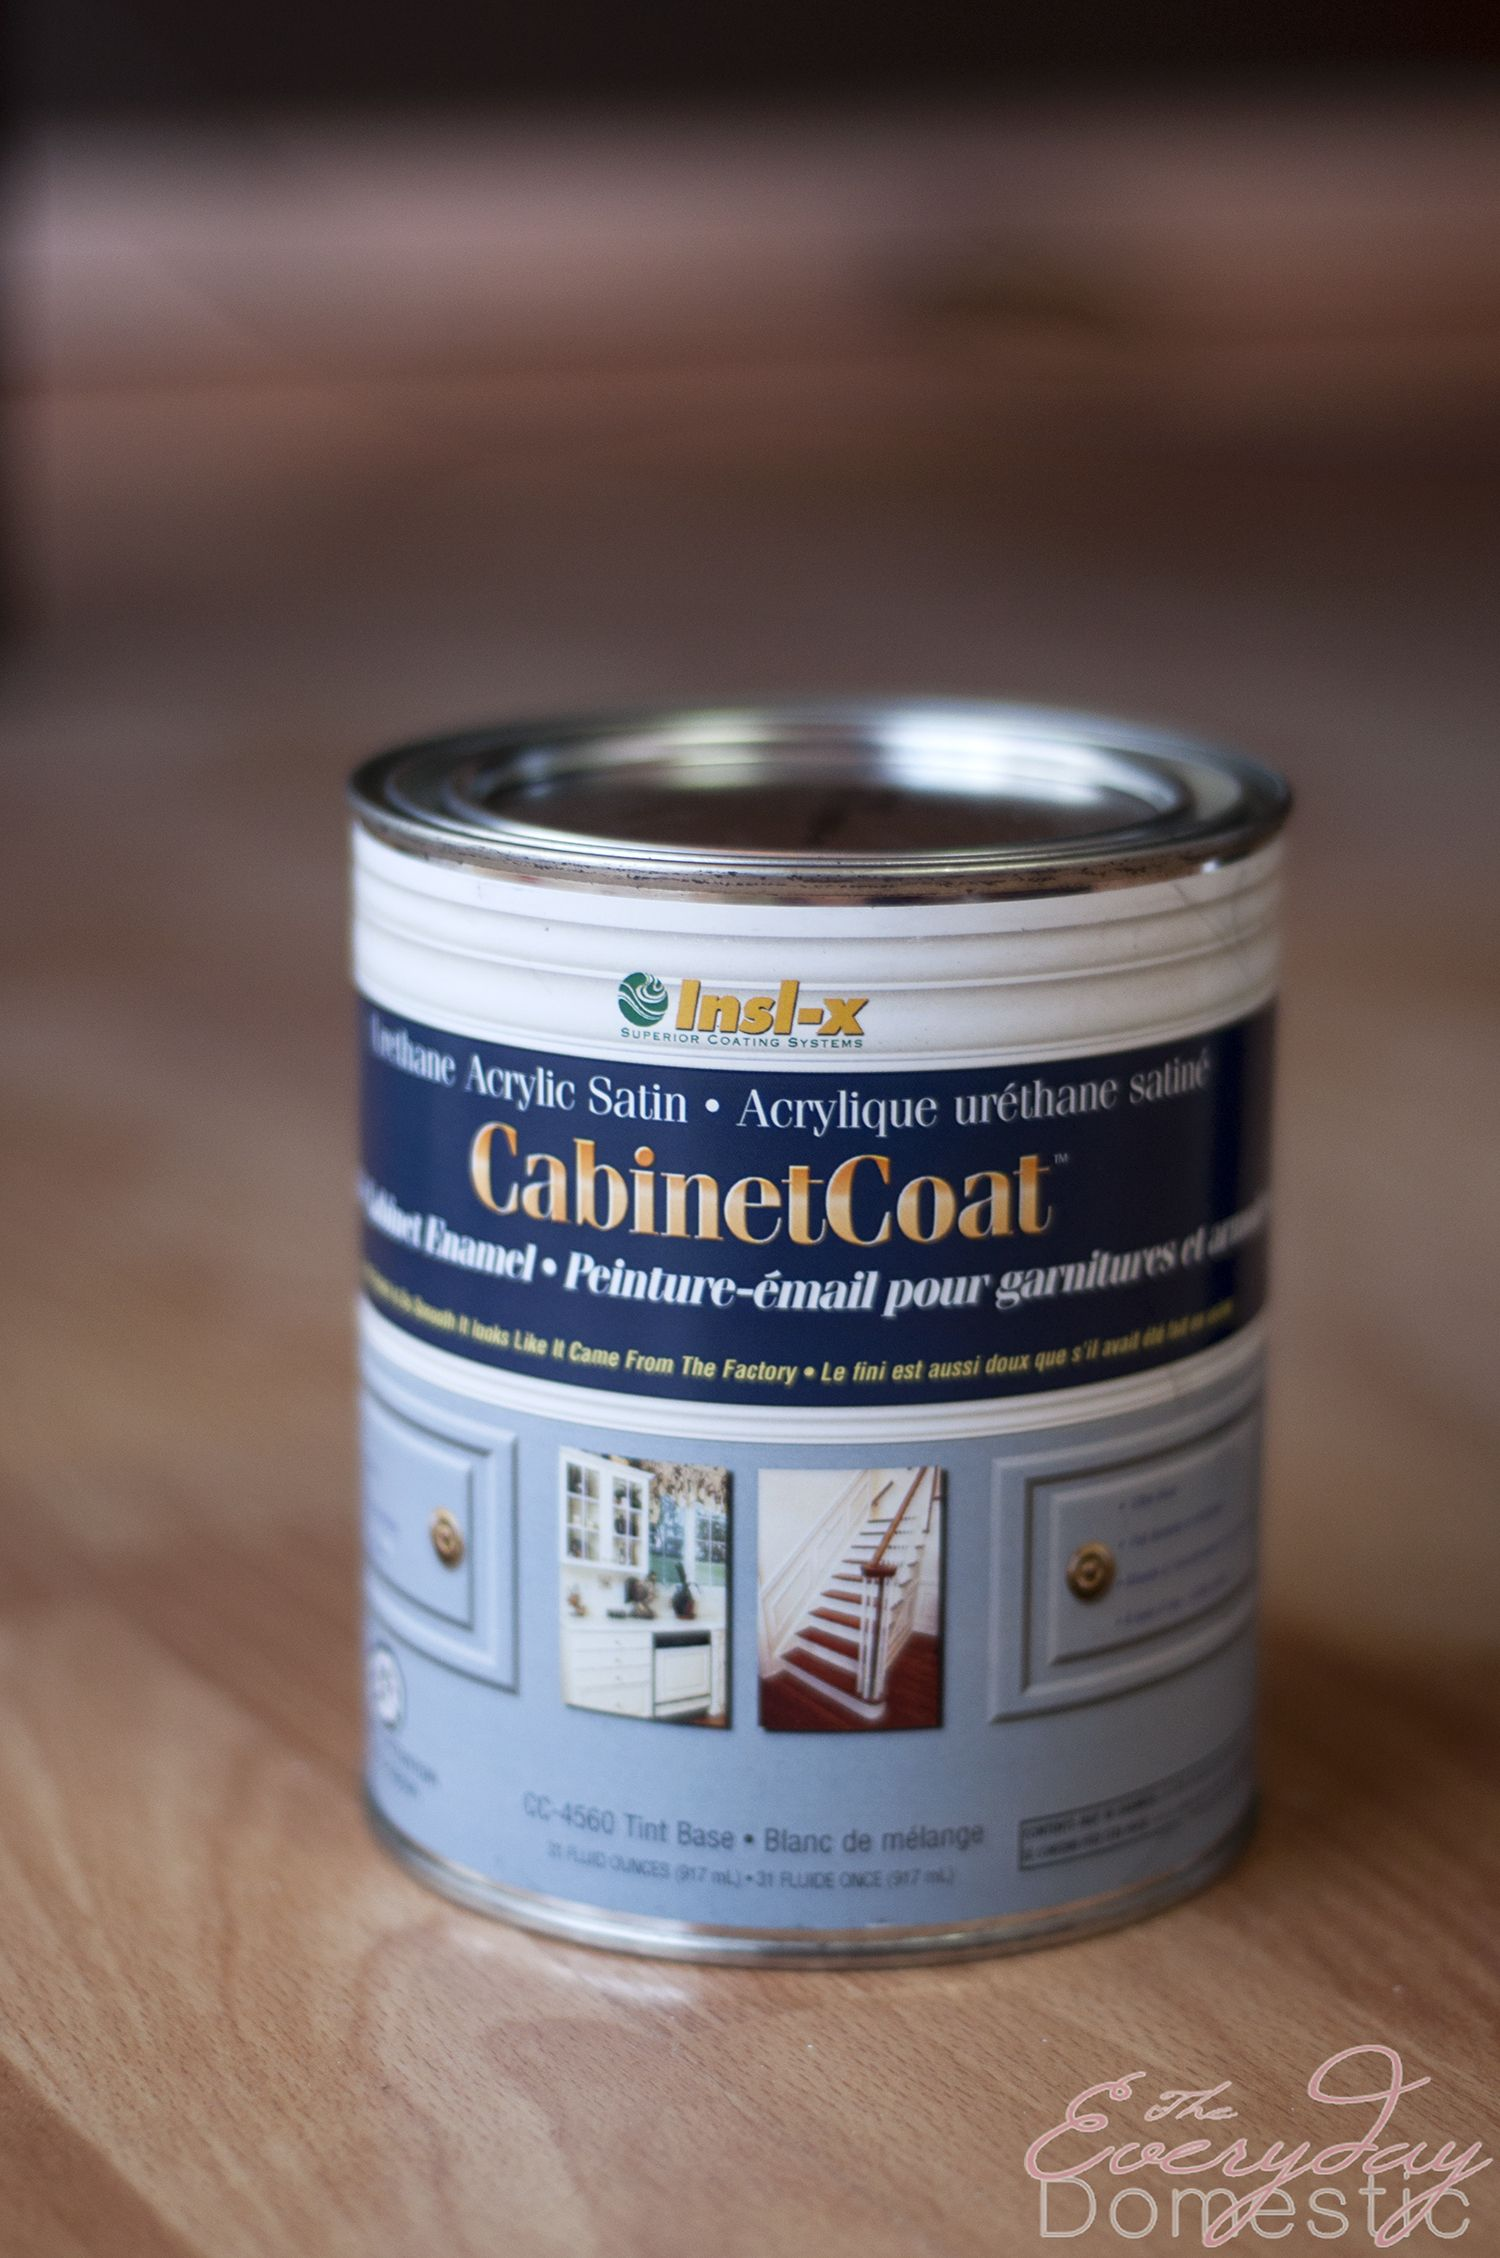 Exceptionnel When I Was Painting My Kitchen Cabinets I Used Insl X Cabinet Coat. I  Wasnu0027t Sure How It Would Work On My 45 Year Old, Oak, Kitchen Cupboards But  This DIY ...